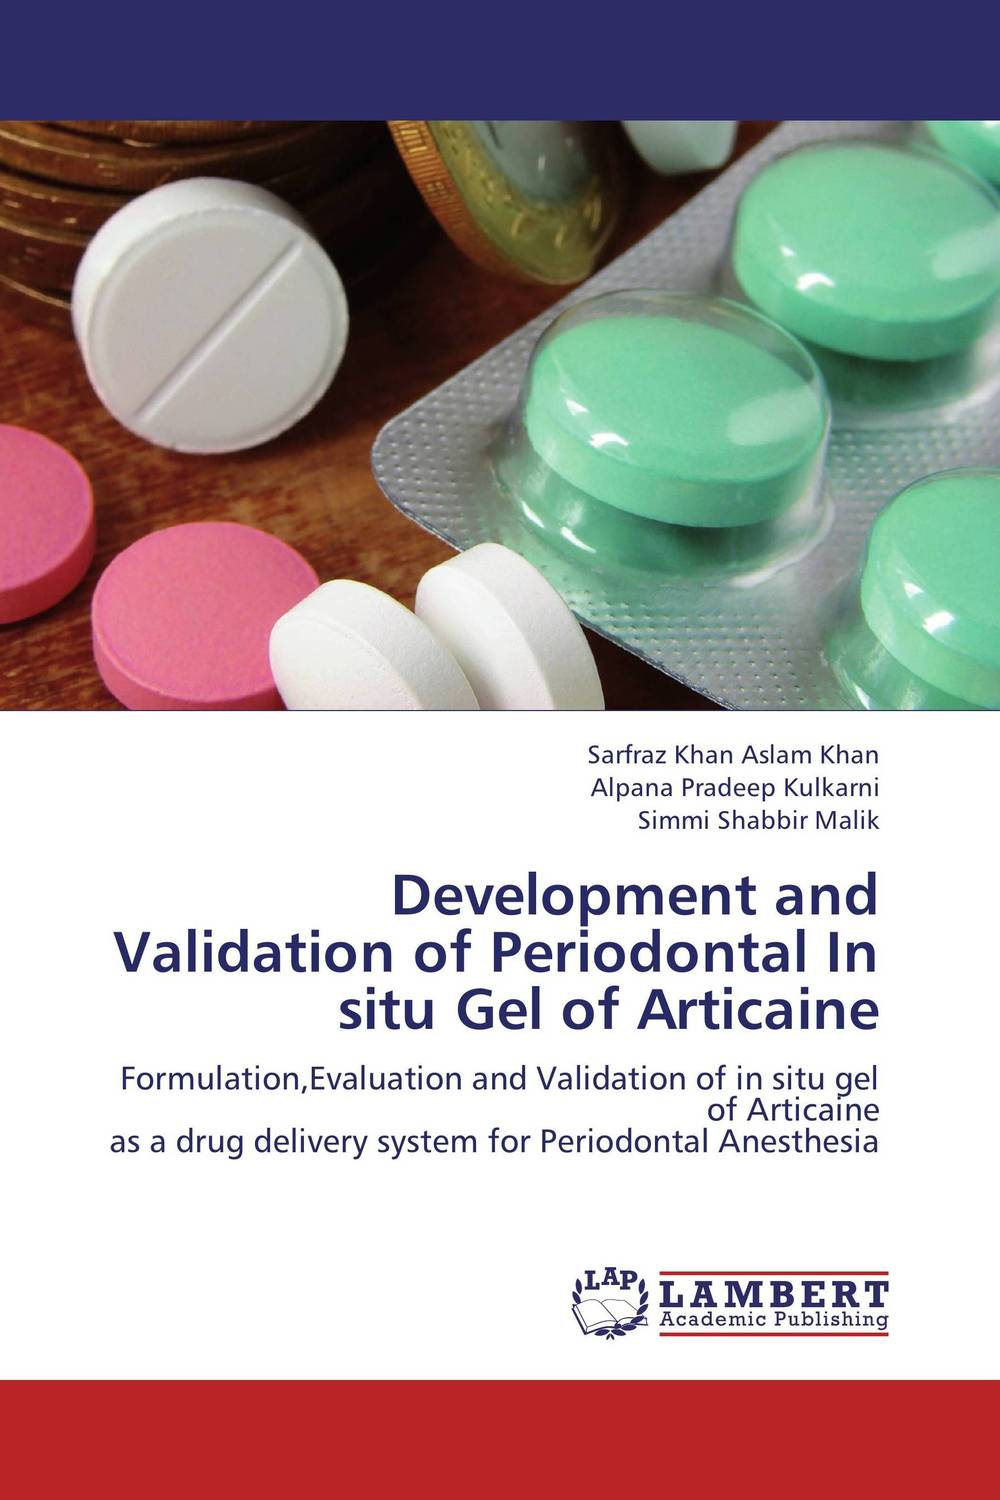 Development and Validation of Periodontal In situ Gel of Articaine kazi rifat ahmed simu akter and kushal roy alternative development loom by reason of natural changes